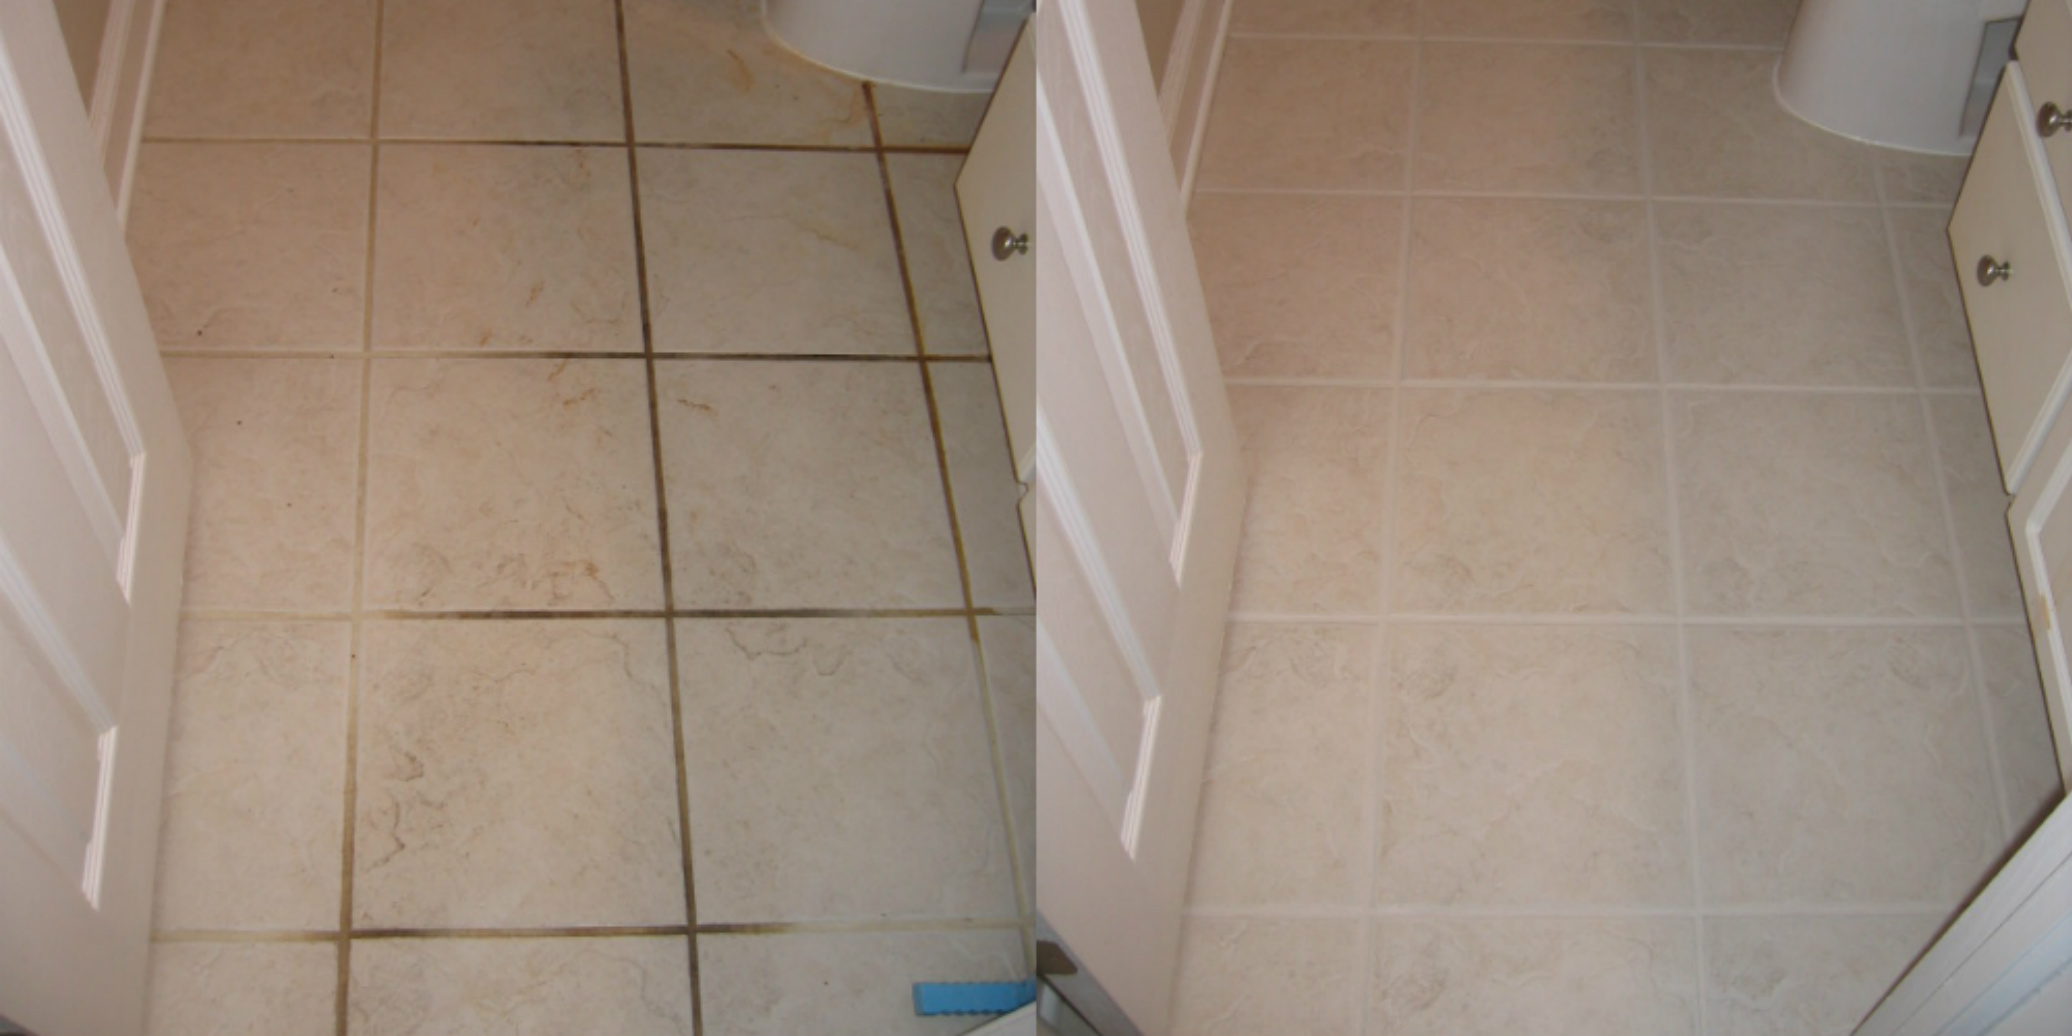 Tile and Grout Cleaning Services Bonnie Brook